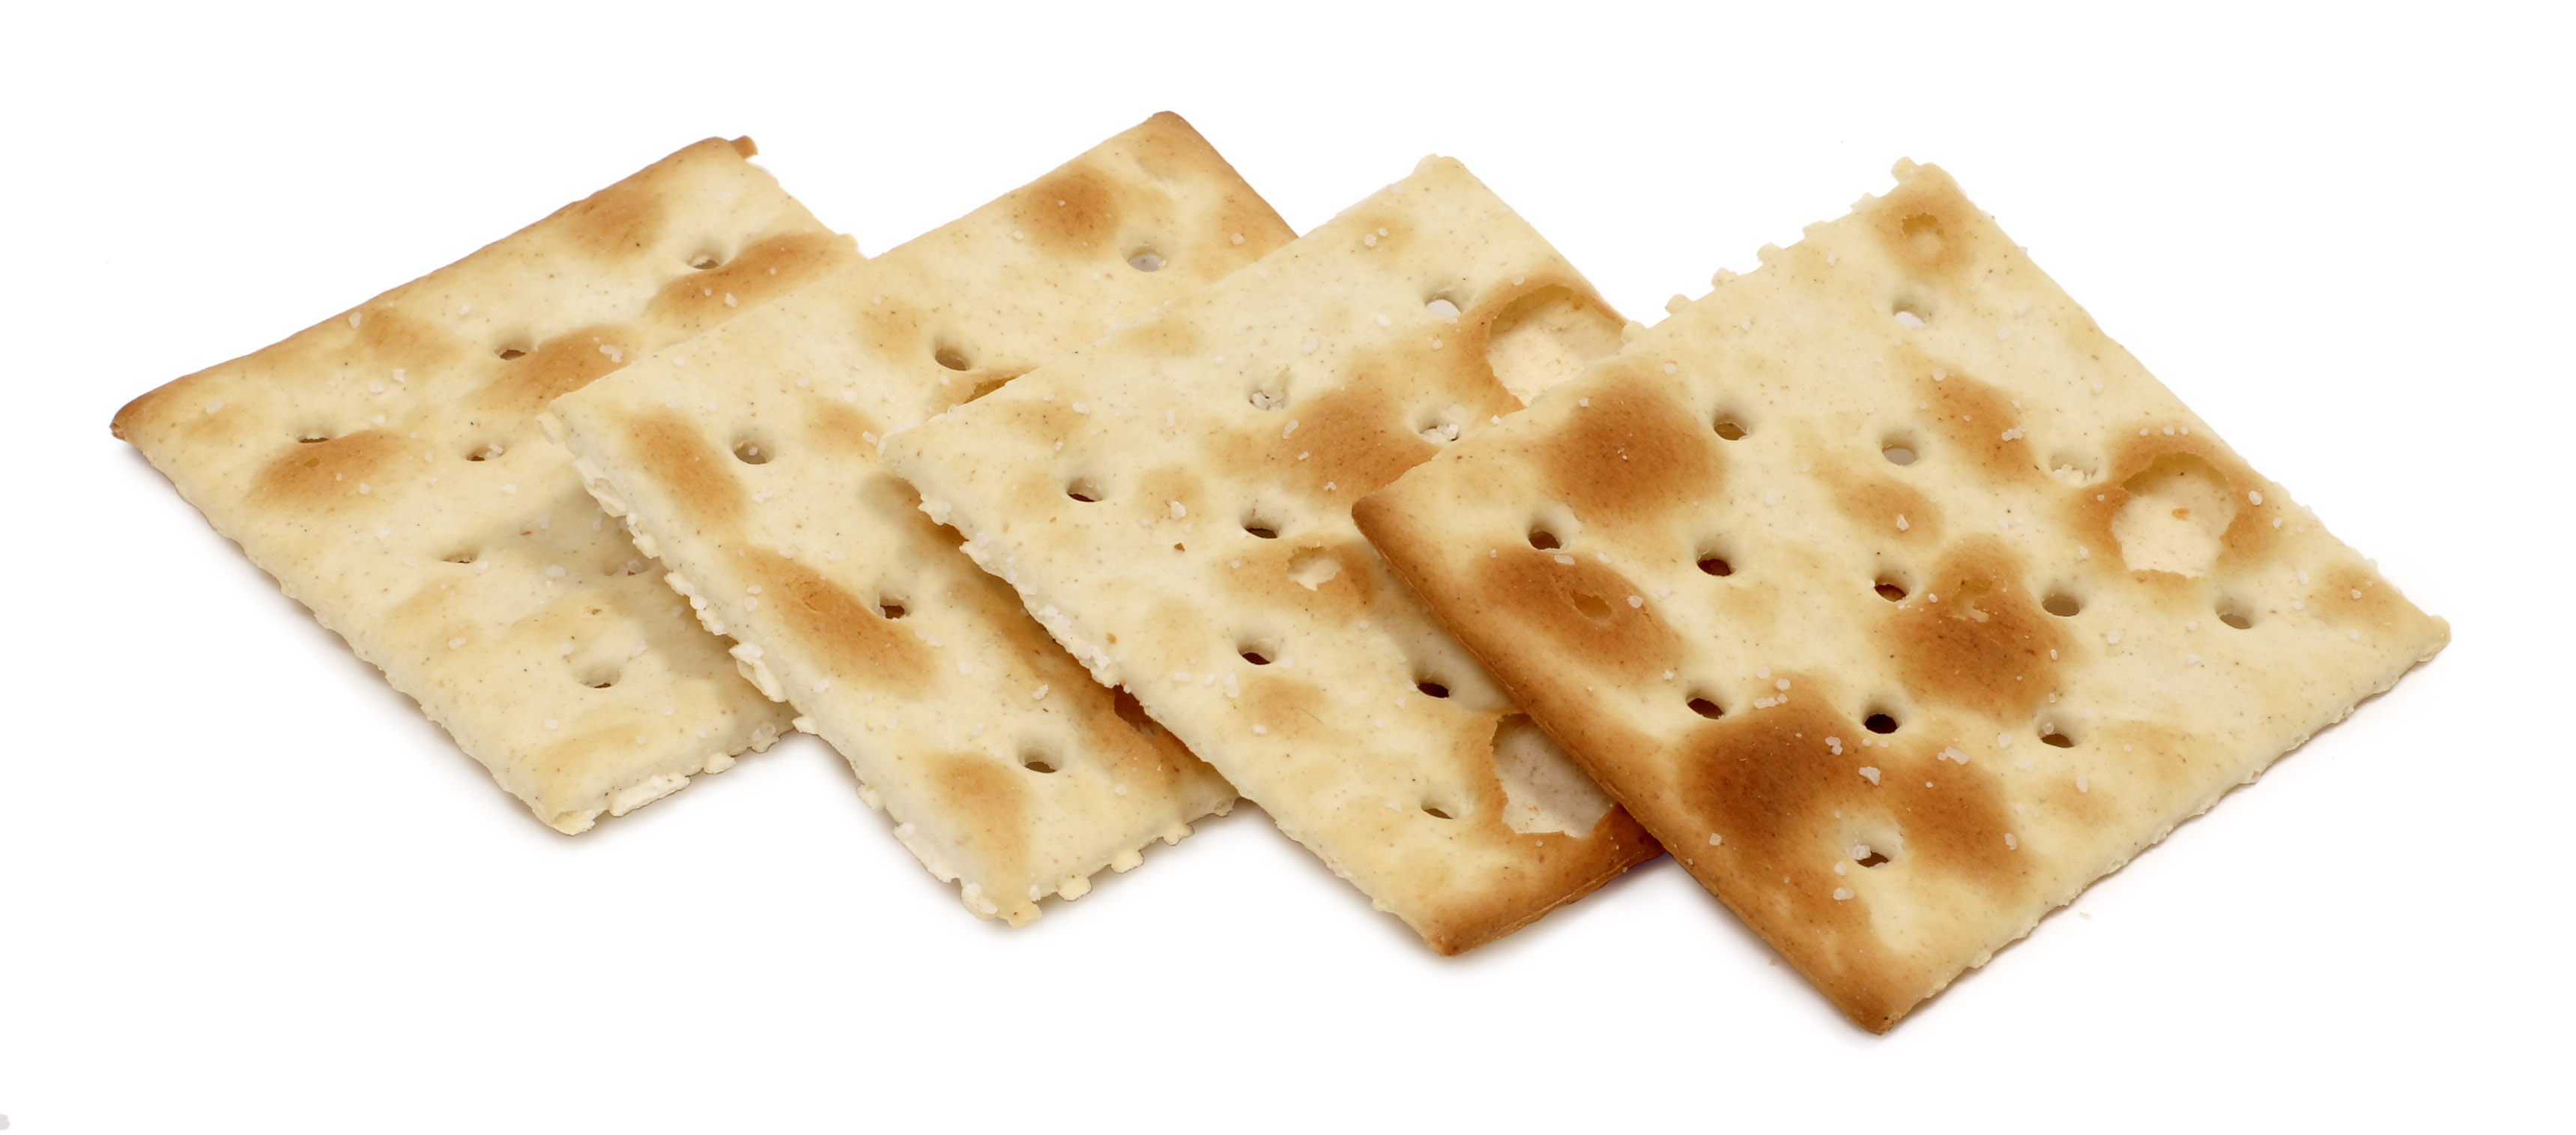 Saltine Crackers Using Natural Yeast